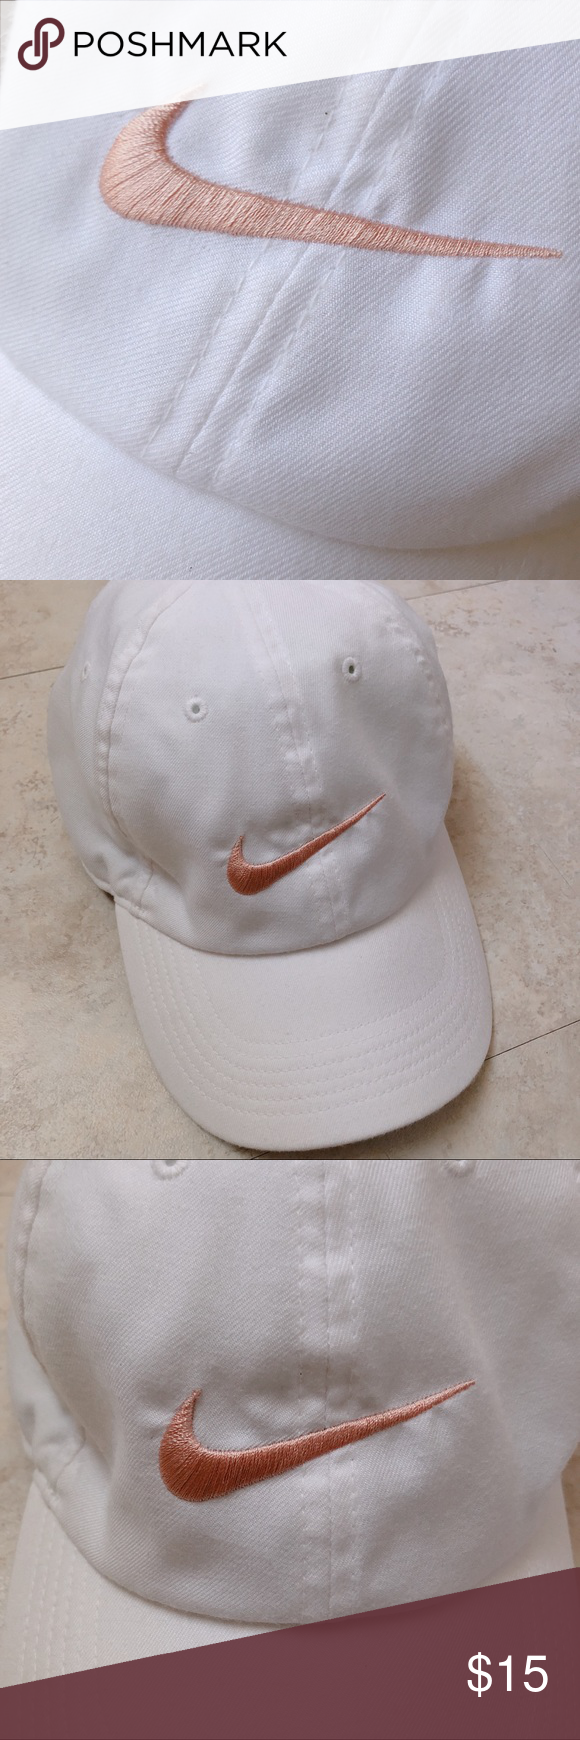 Nike Women s White   Rose Gold Pink Copper Dad Hat Adjustable back. No  stains etc. Worn once and felt that white wasn t my color for hats. ed013054a28